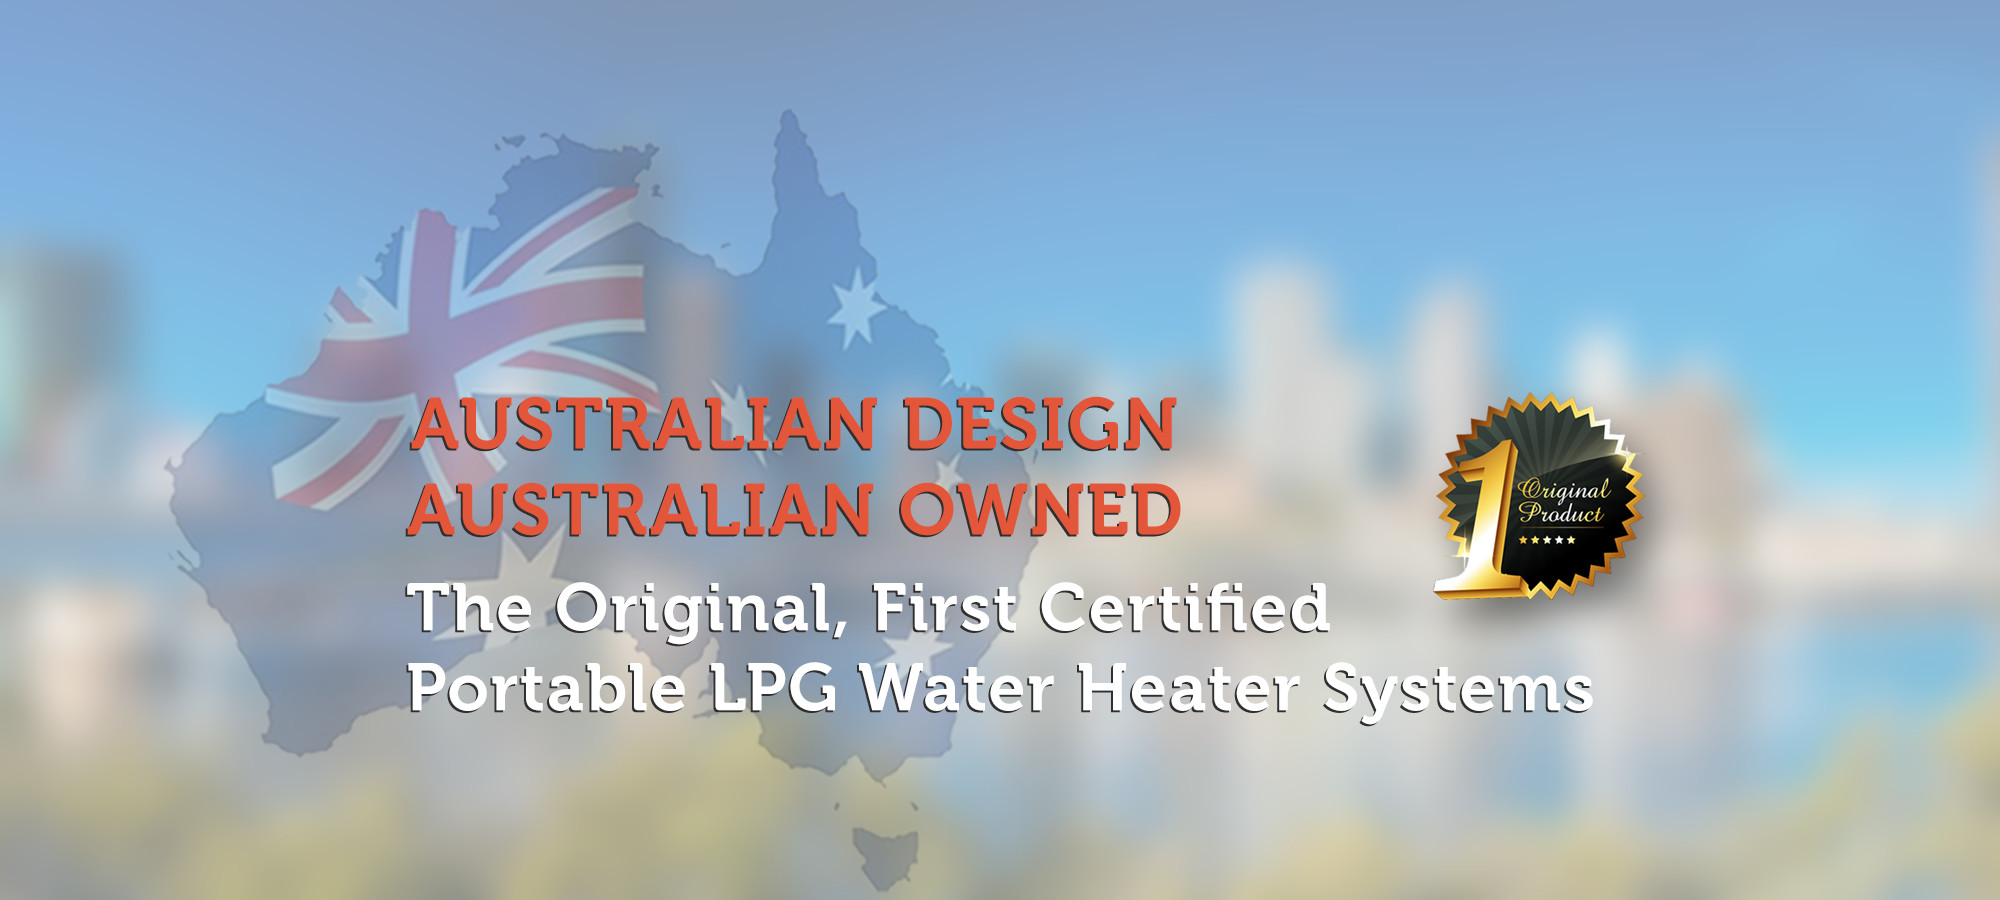 Australian Owned & Designed